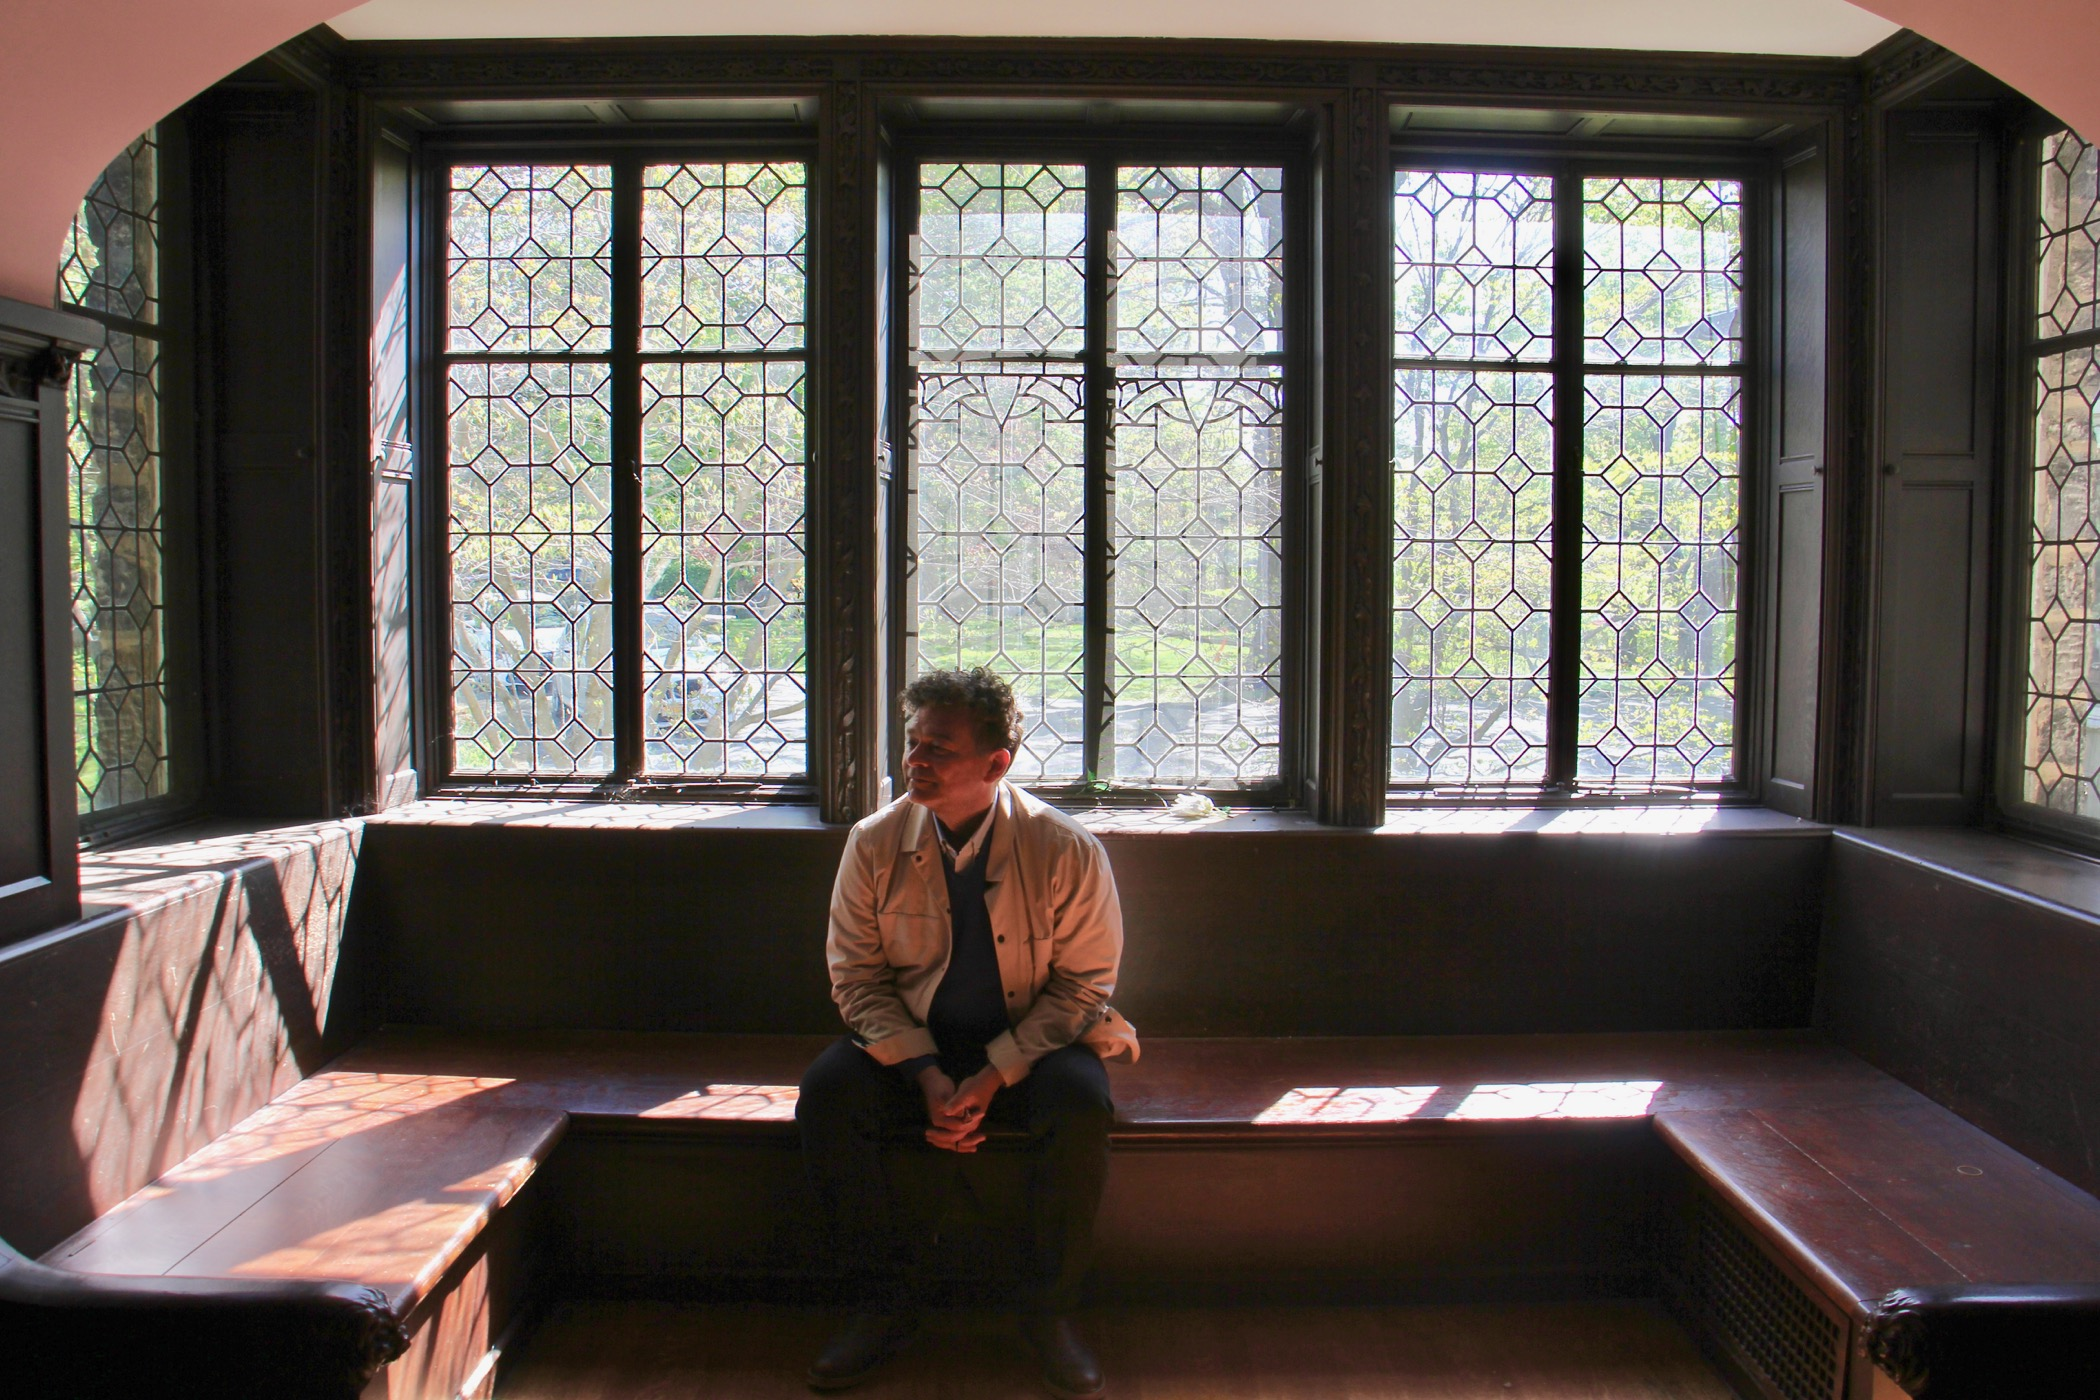 William Valerio, director of the Woodmere Art Museum sits in the Rose Room at St. Michael Hall, envisioning the room as a performance venue. (Emma Lee/WHYY)